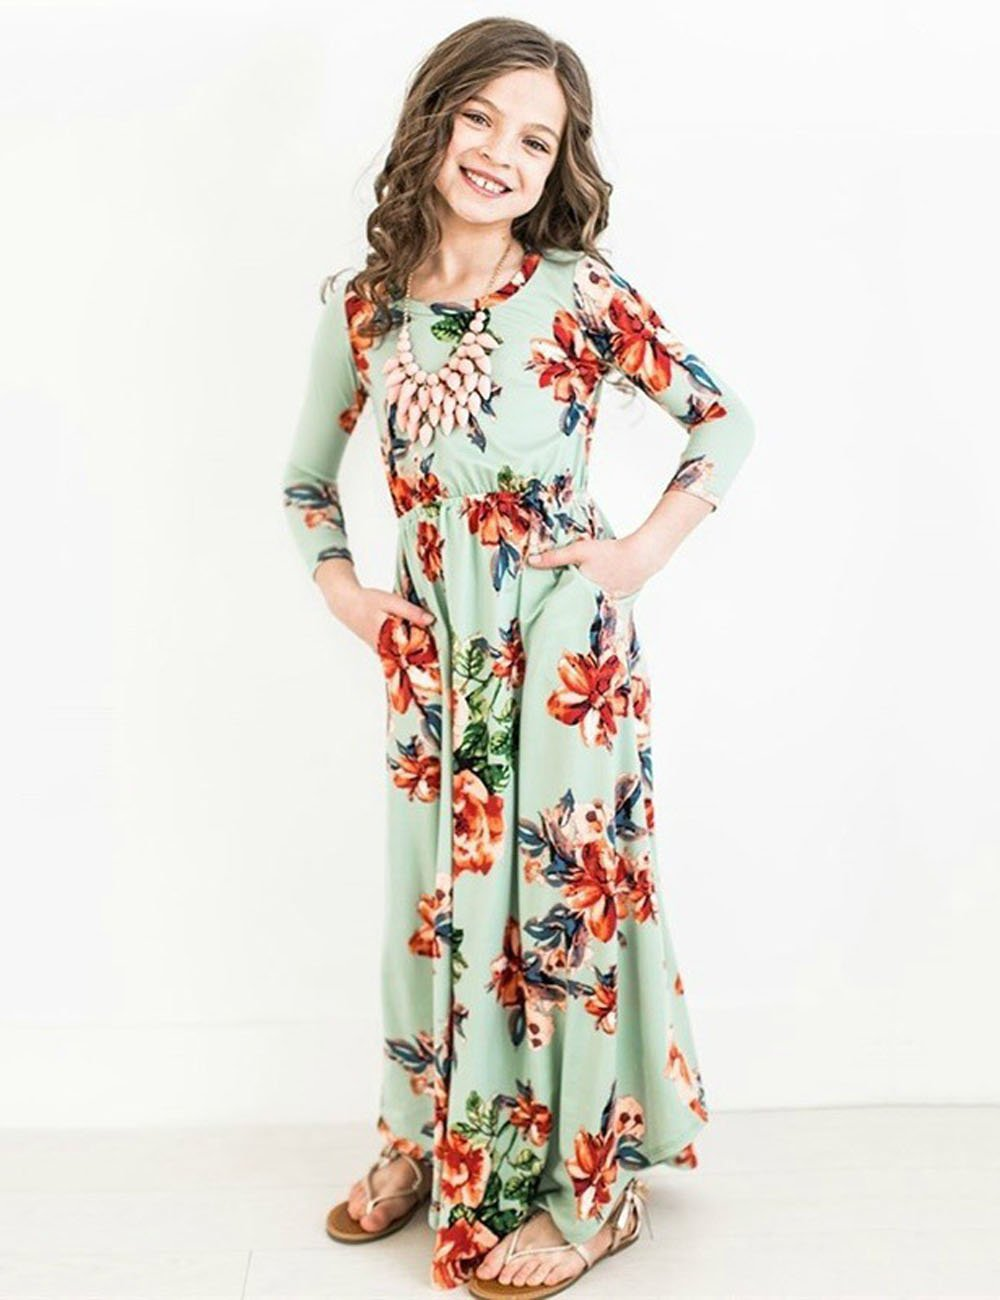 JYH Girls Maxi Dress, Floral Flared Sewing Pocket Three-Quarter Sleeves Long Dress Size 5-12 by JYH (Image #3)